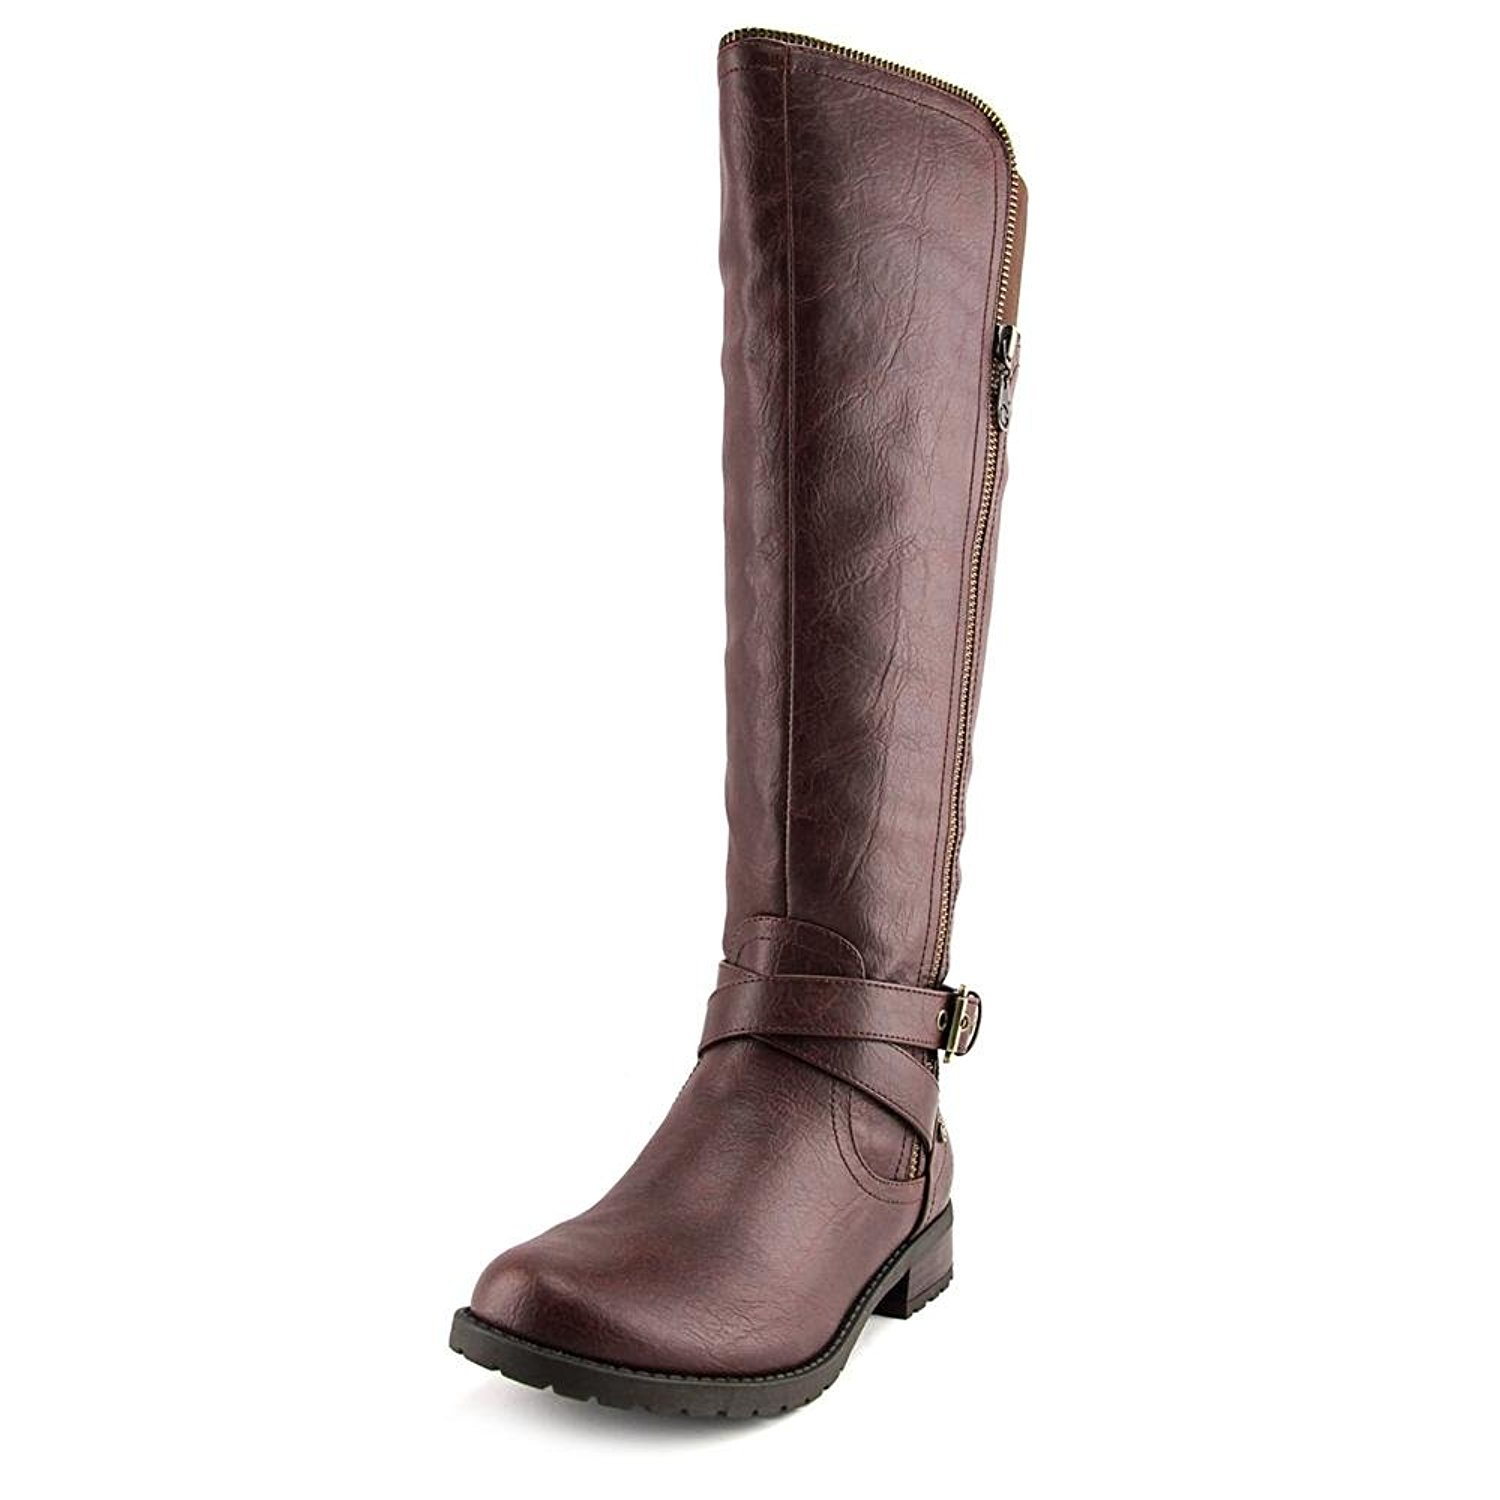 G by Guess Womens Halsey Round Toe Knee High Riding Boots Dark Brown Size 7.0